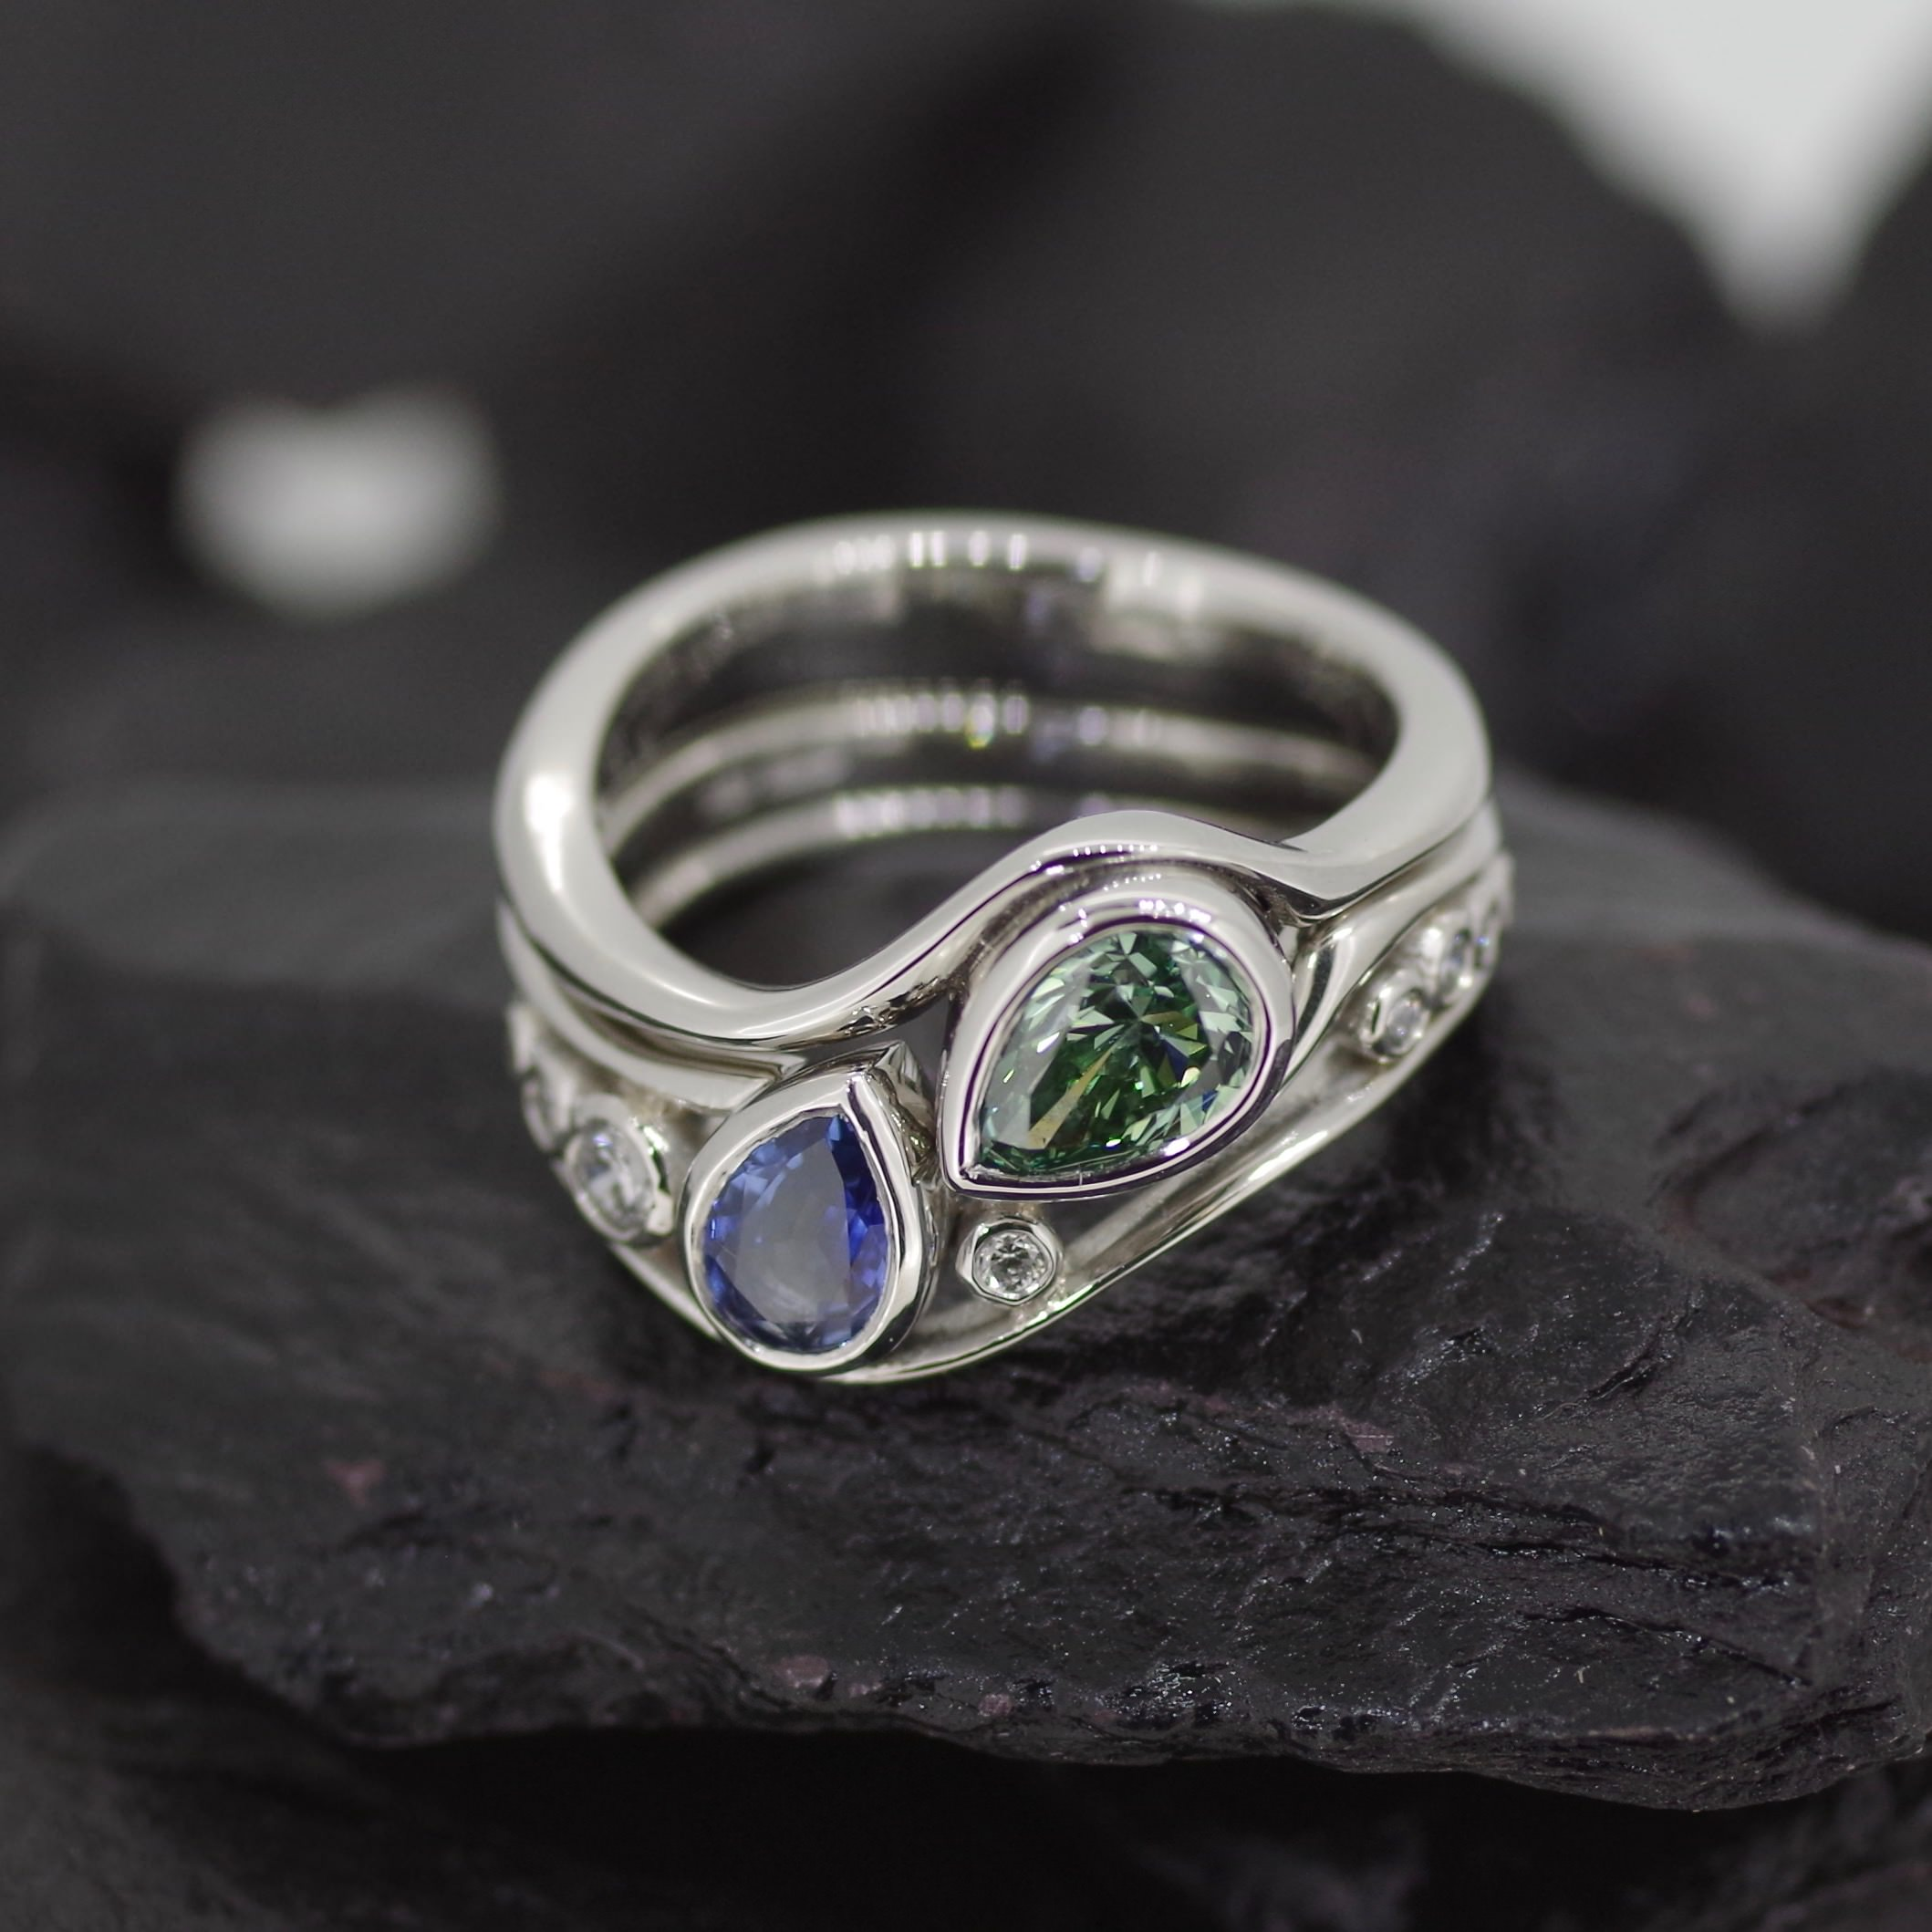 unique handmade rings ring wedding photo x beautiful hanl precious of gemstones engagement metals bespoke susanna